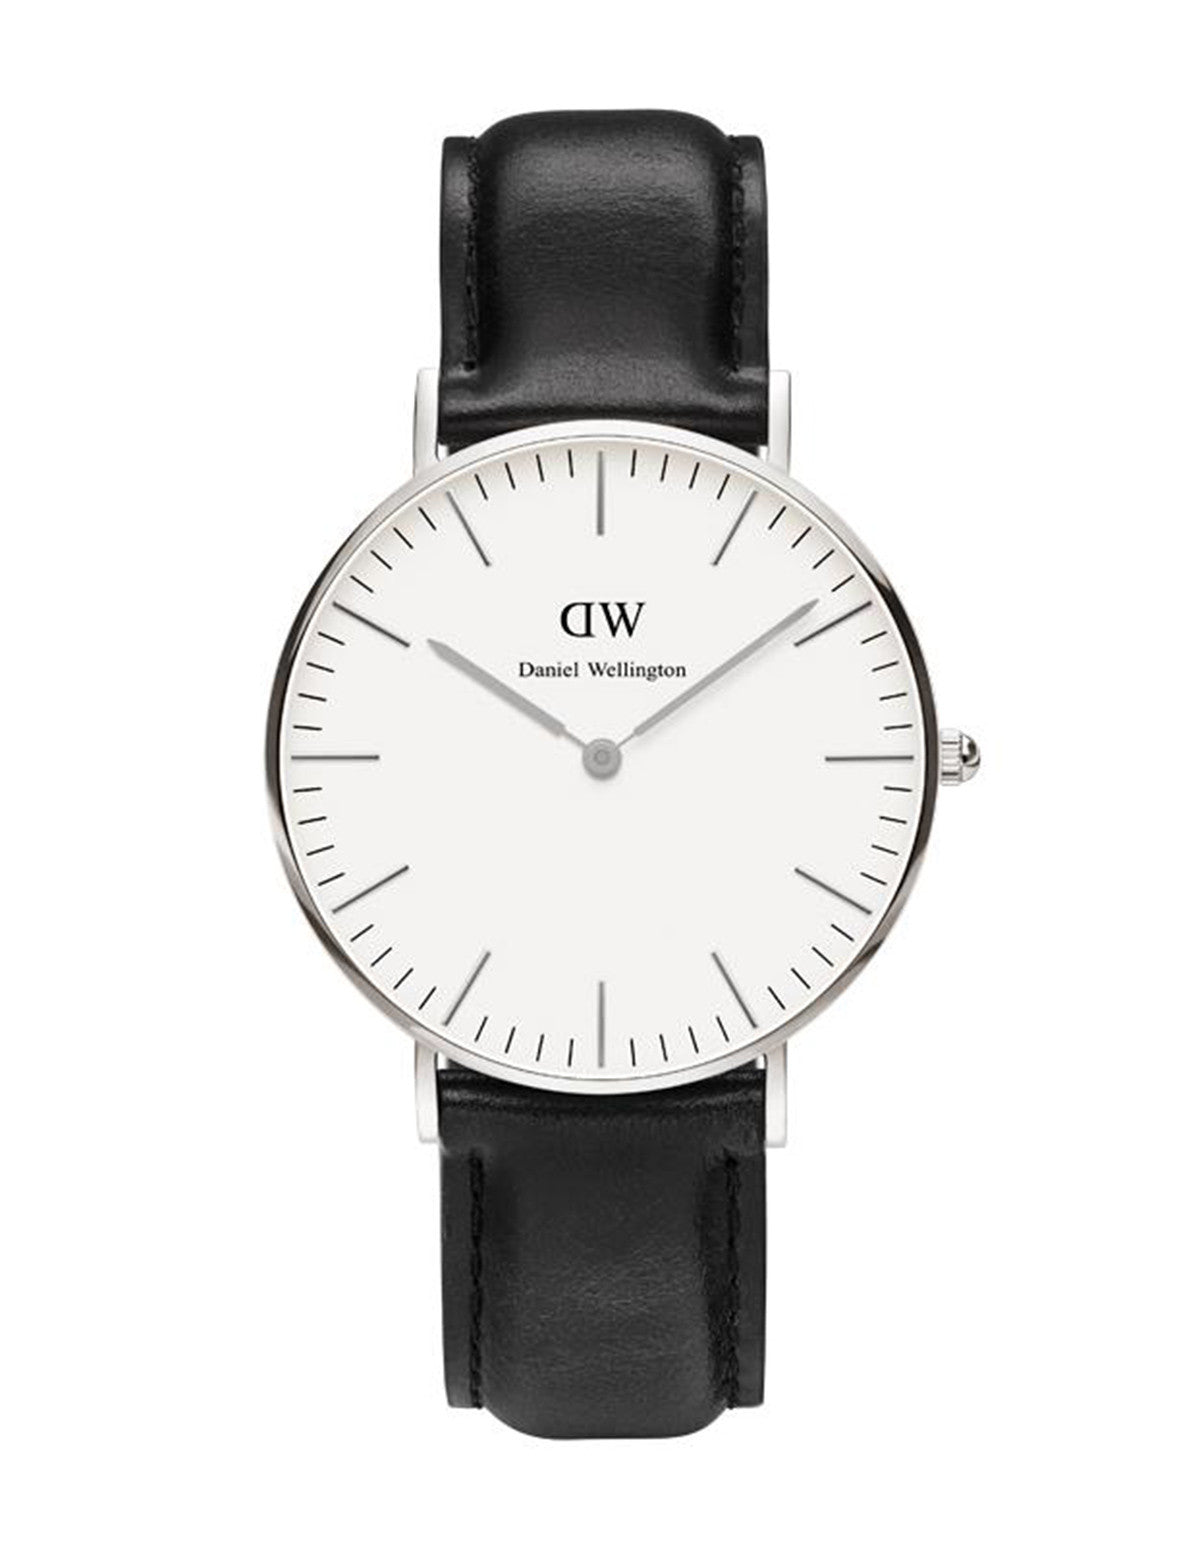 Daniel Wellington Sheffield Watch Silver 36mm - Still Life - 1